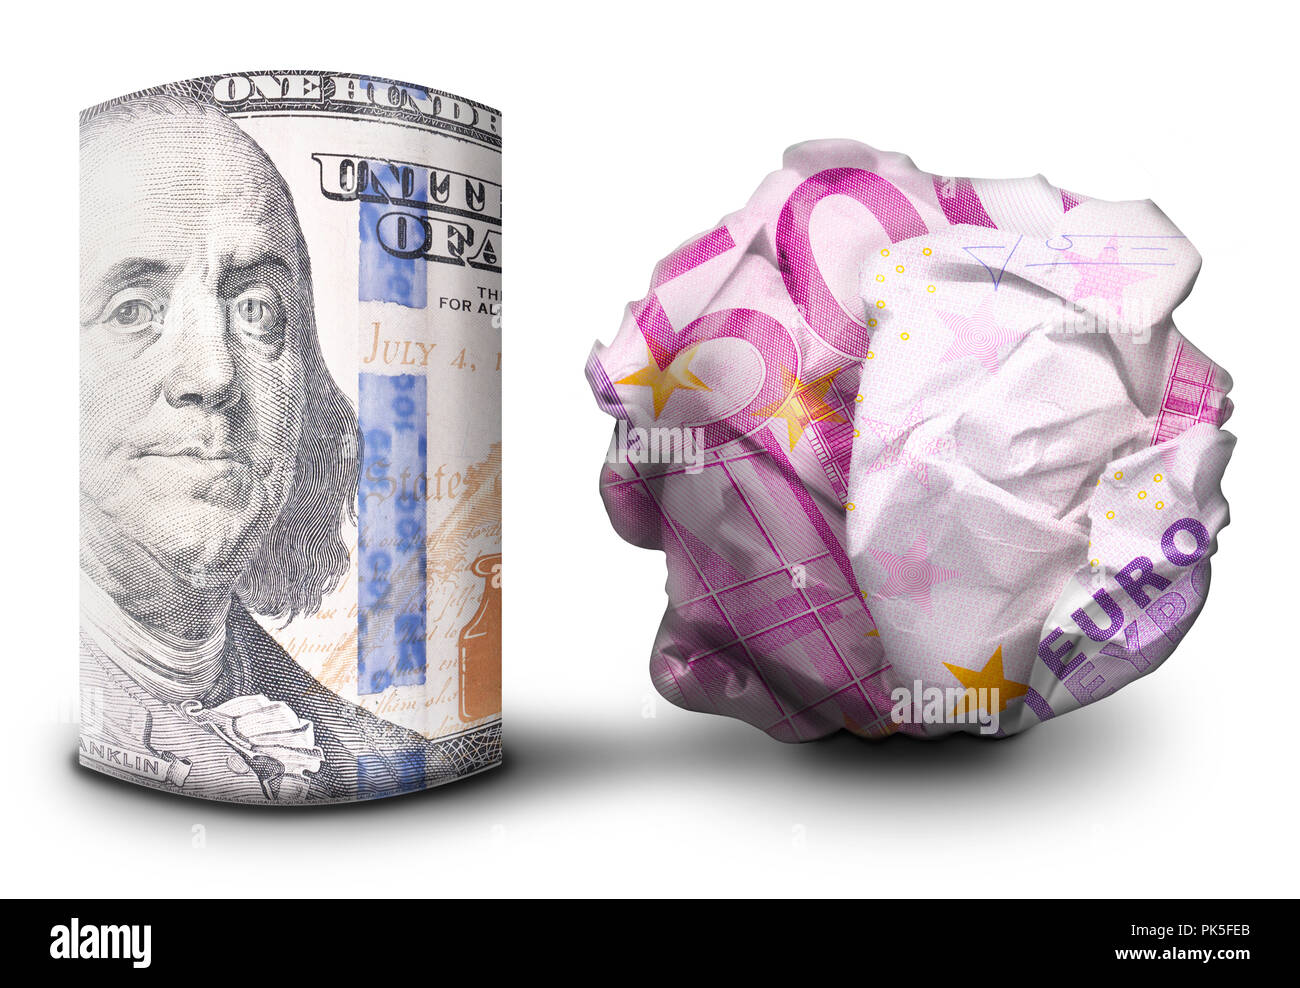 Two fiat money bills standing next to each other. One standing flat and one crumbled symbolizing currency strength and weakness. Stock Photo